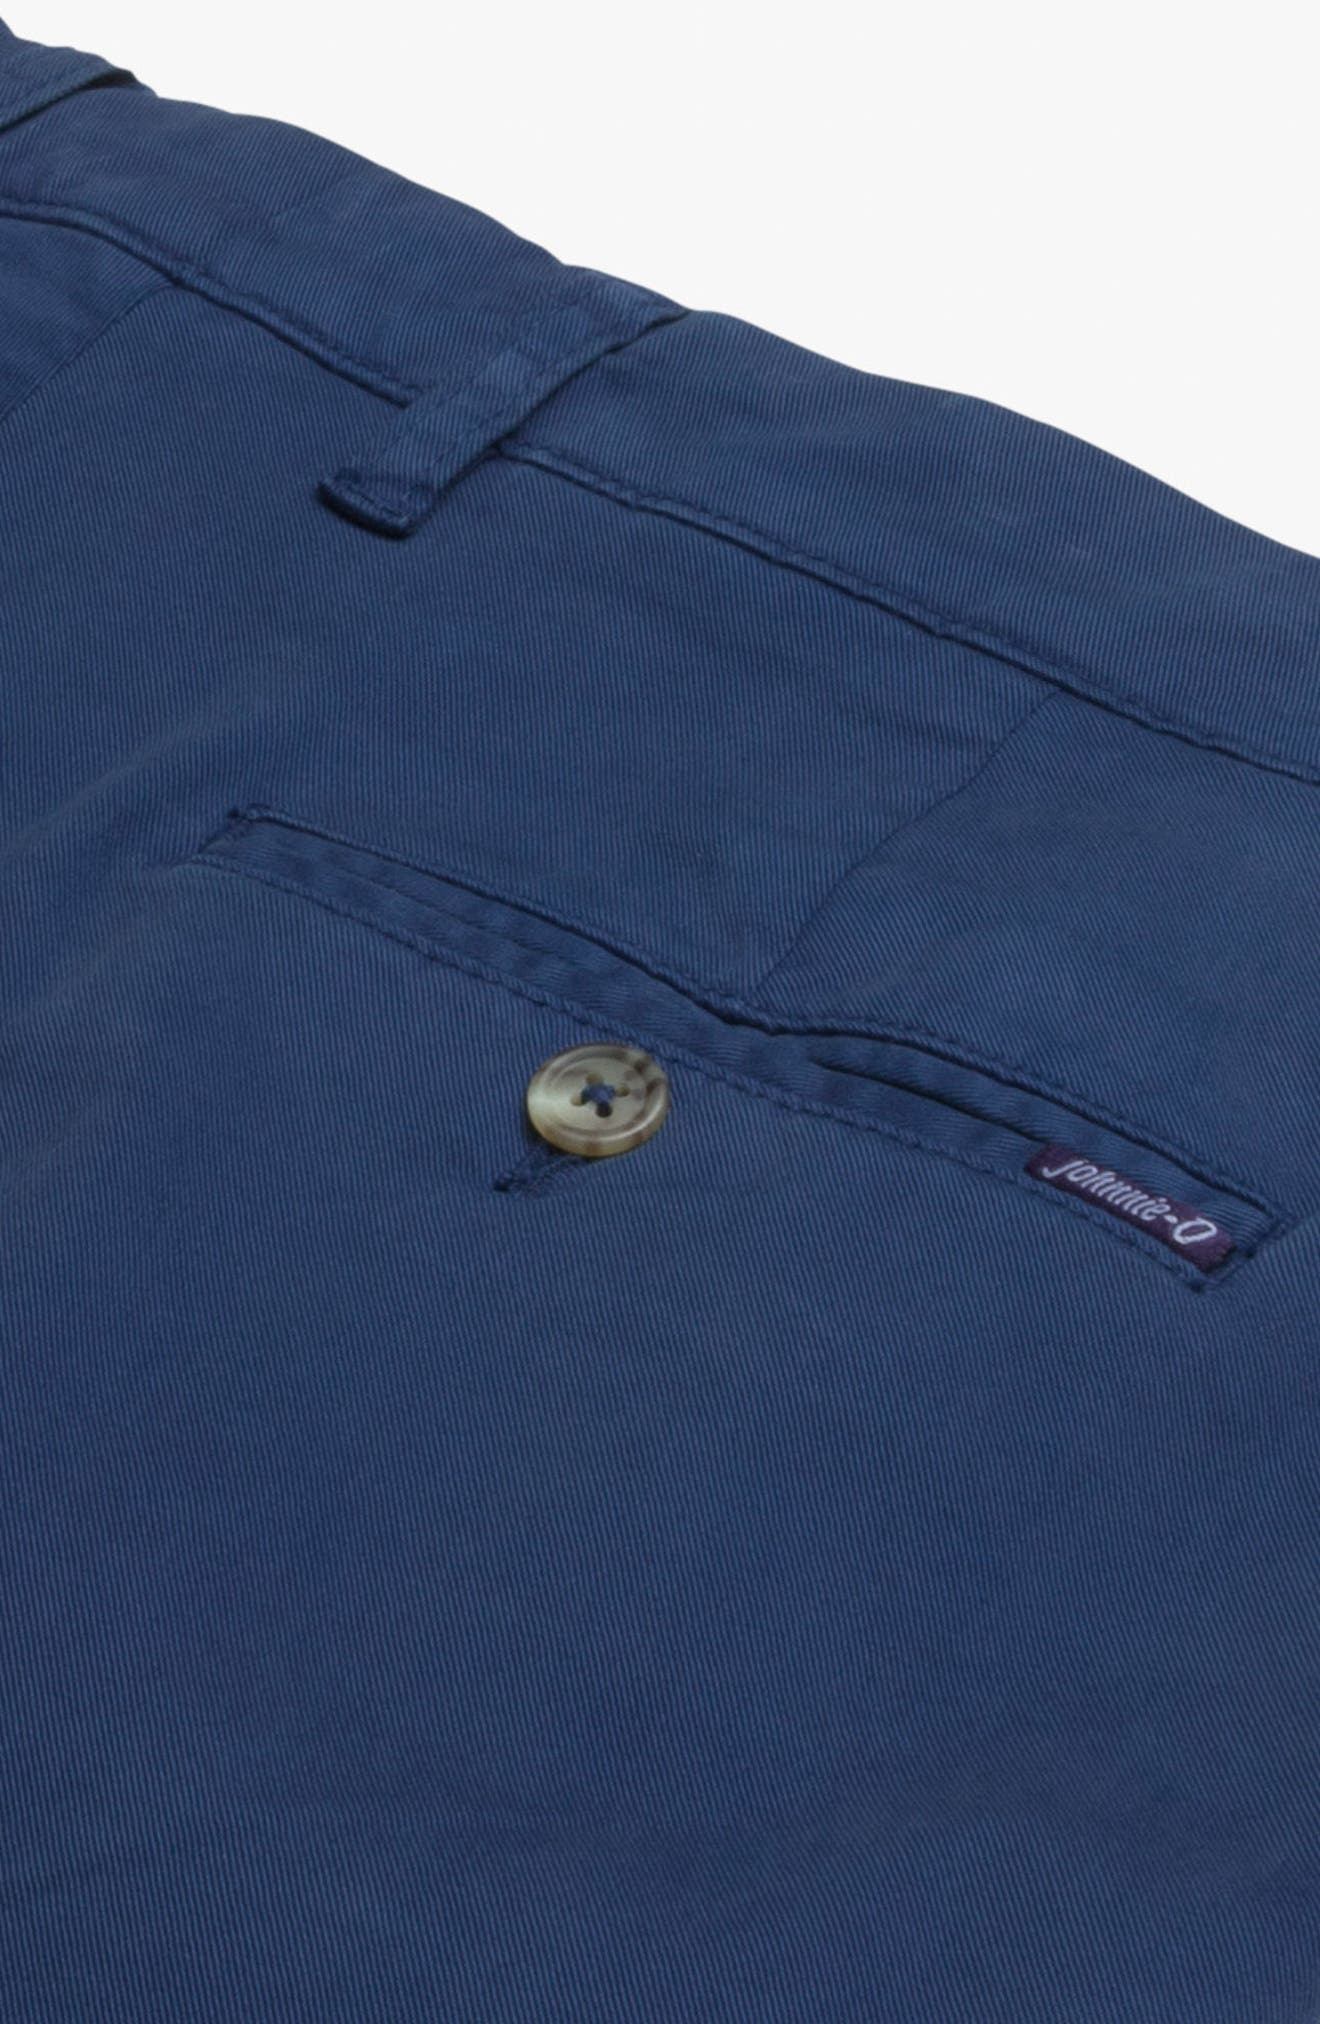 Neal Cotton Twill Shorts,                             Alternate thumbnail 2, color,                             High Tide